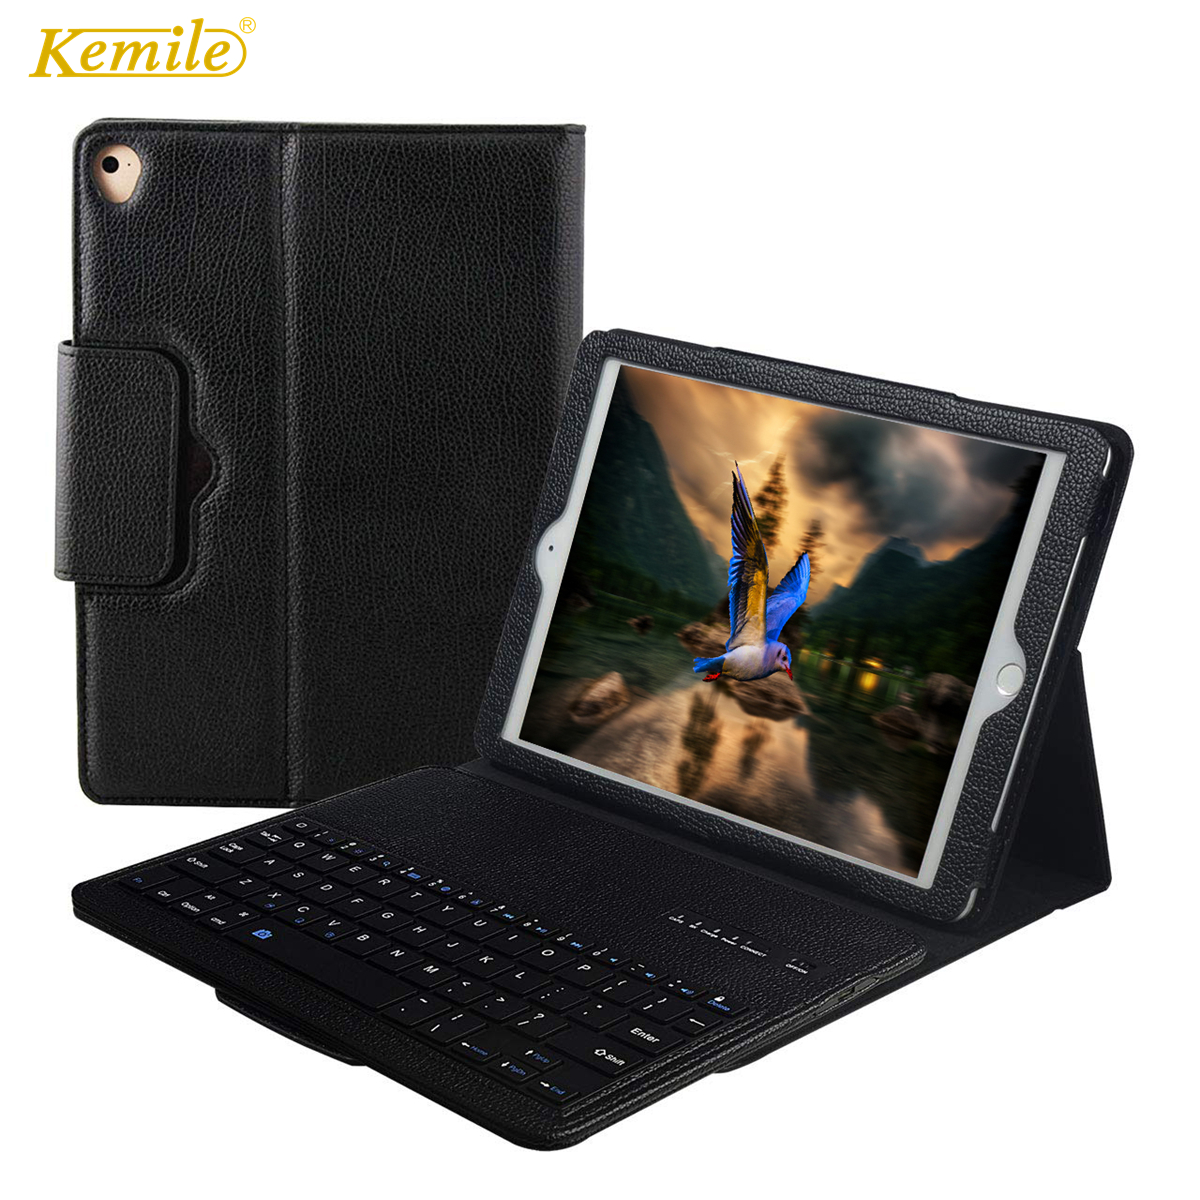 Bluetooth Keyboard Case For iPad Air 3 10.5 Leather Case Stand Detachable Smart Cover For iPad Air 3 10.5 Pro 10.5 Keypad klavye